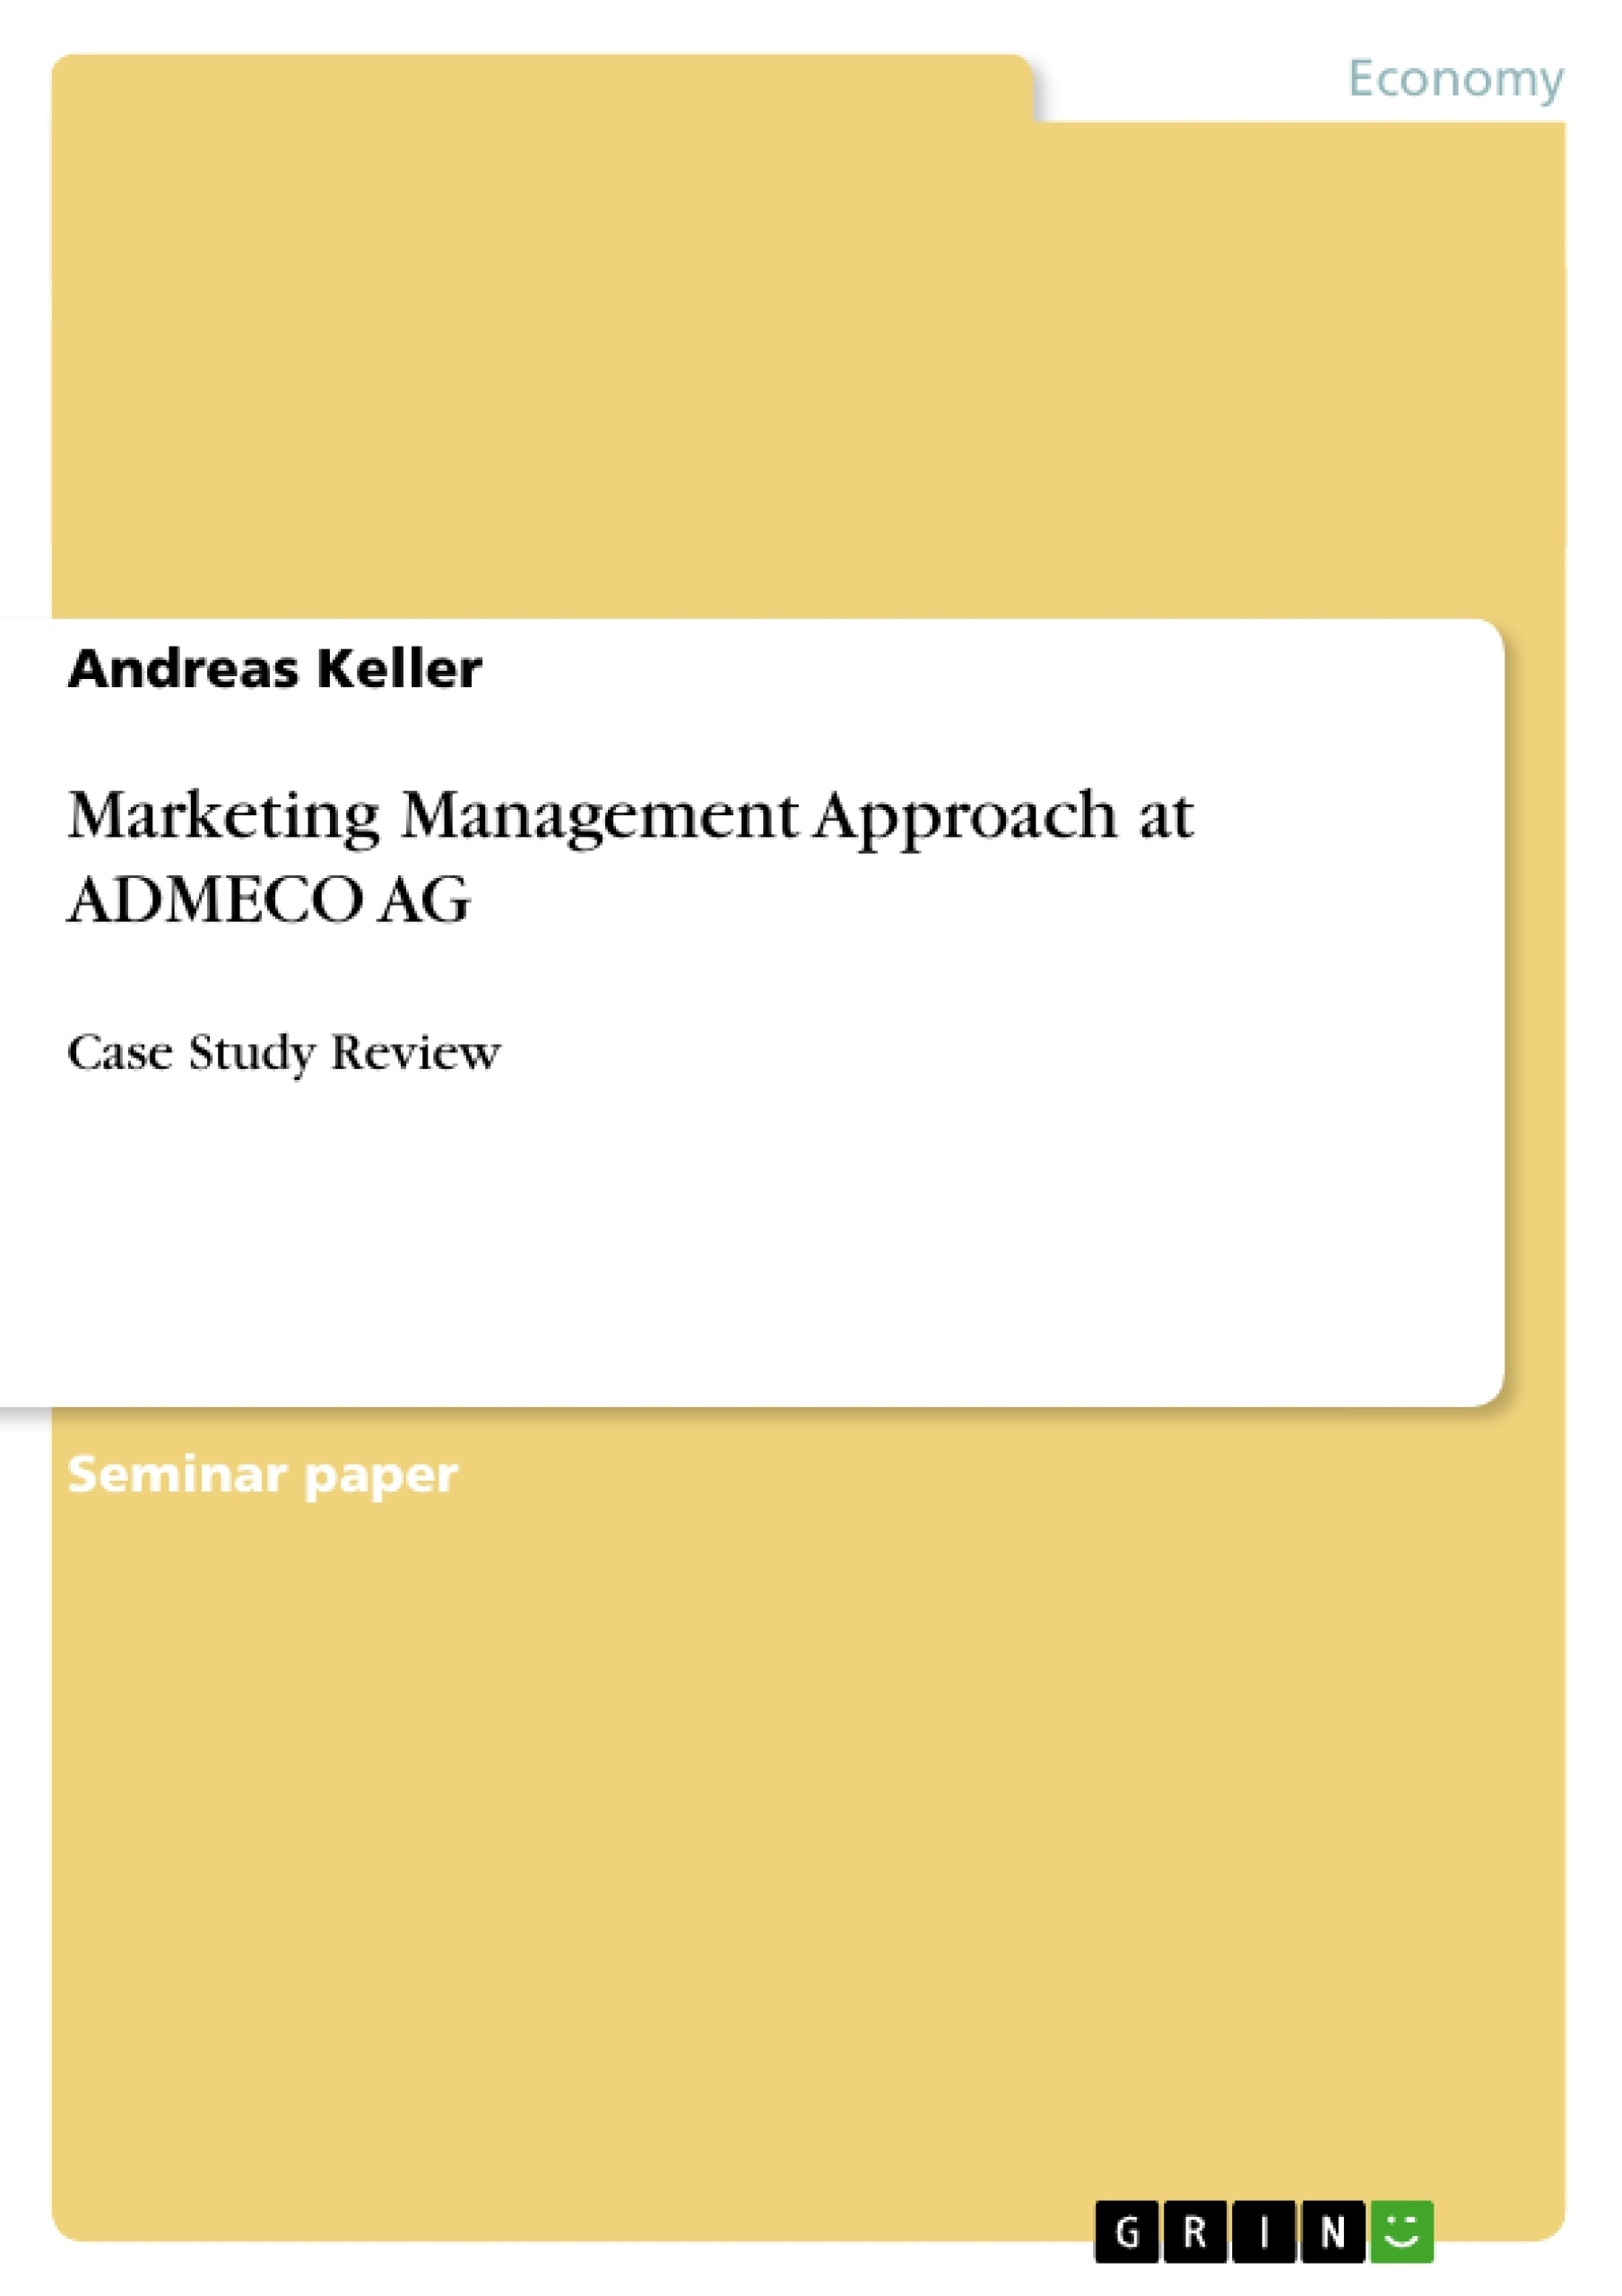 Title: Marketing Management Approach at ADMECO AG